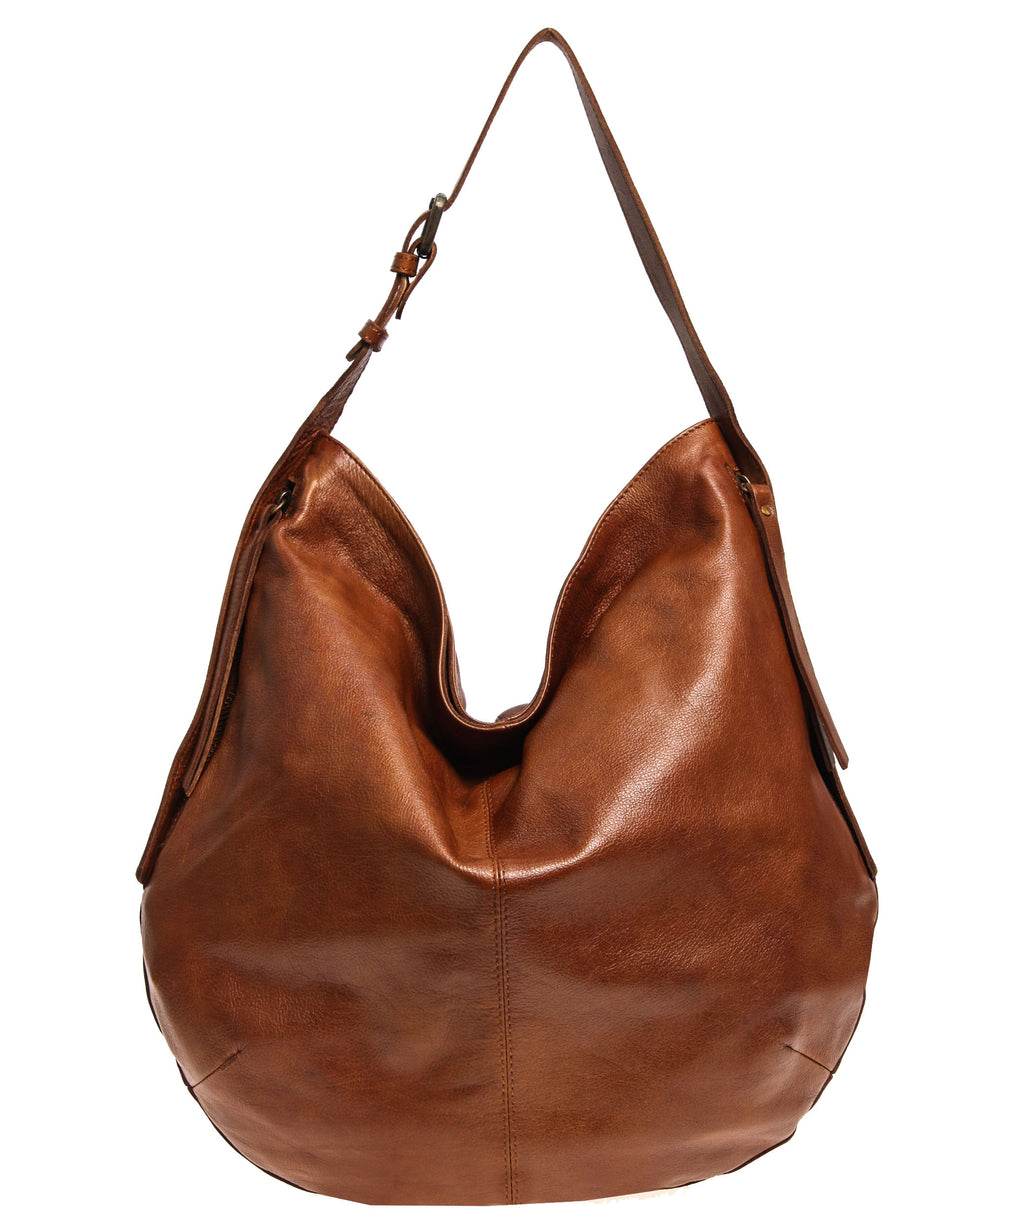 Tano Rounded Hobo with Two Side Zip Pockets (2390929080404)